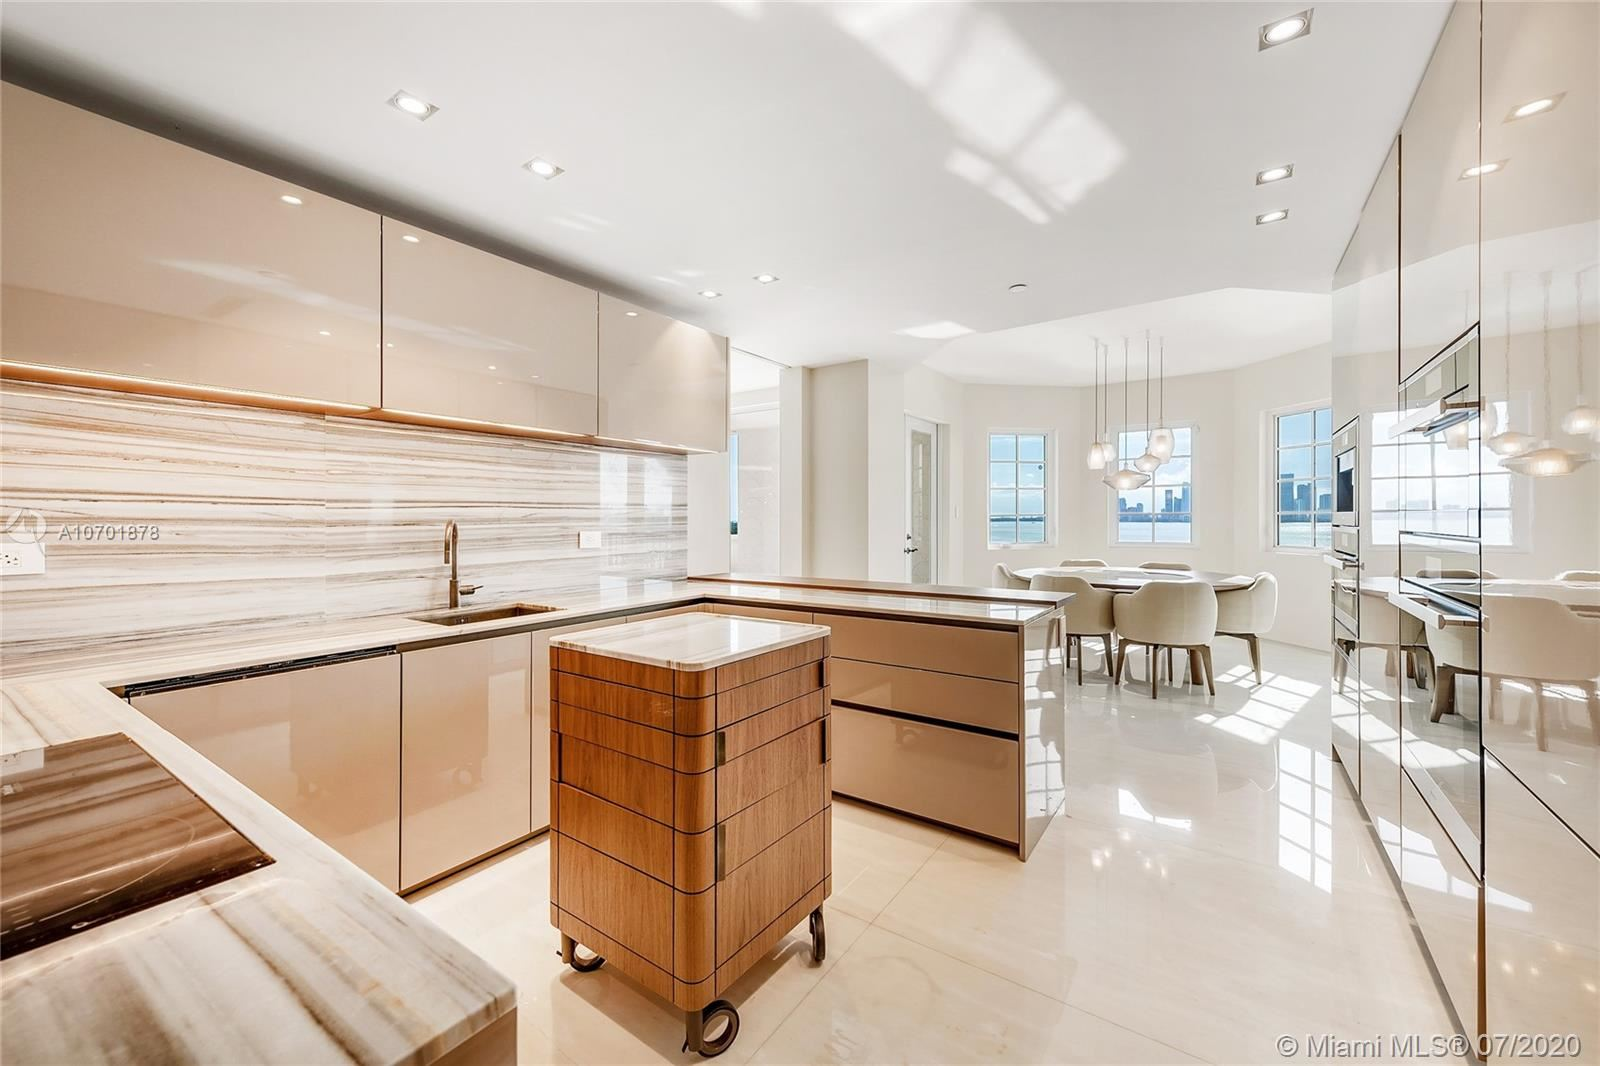 Photo 16 of Listing MLS a10701878 in 5292 Fisher Island Dr #5292 Miami FL 33109